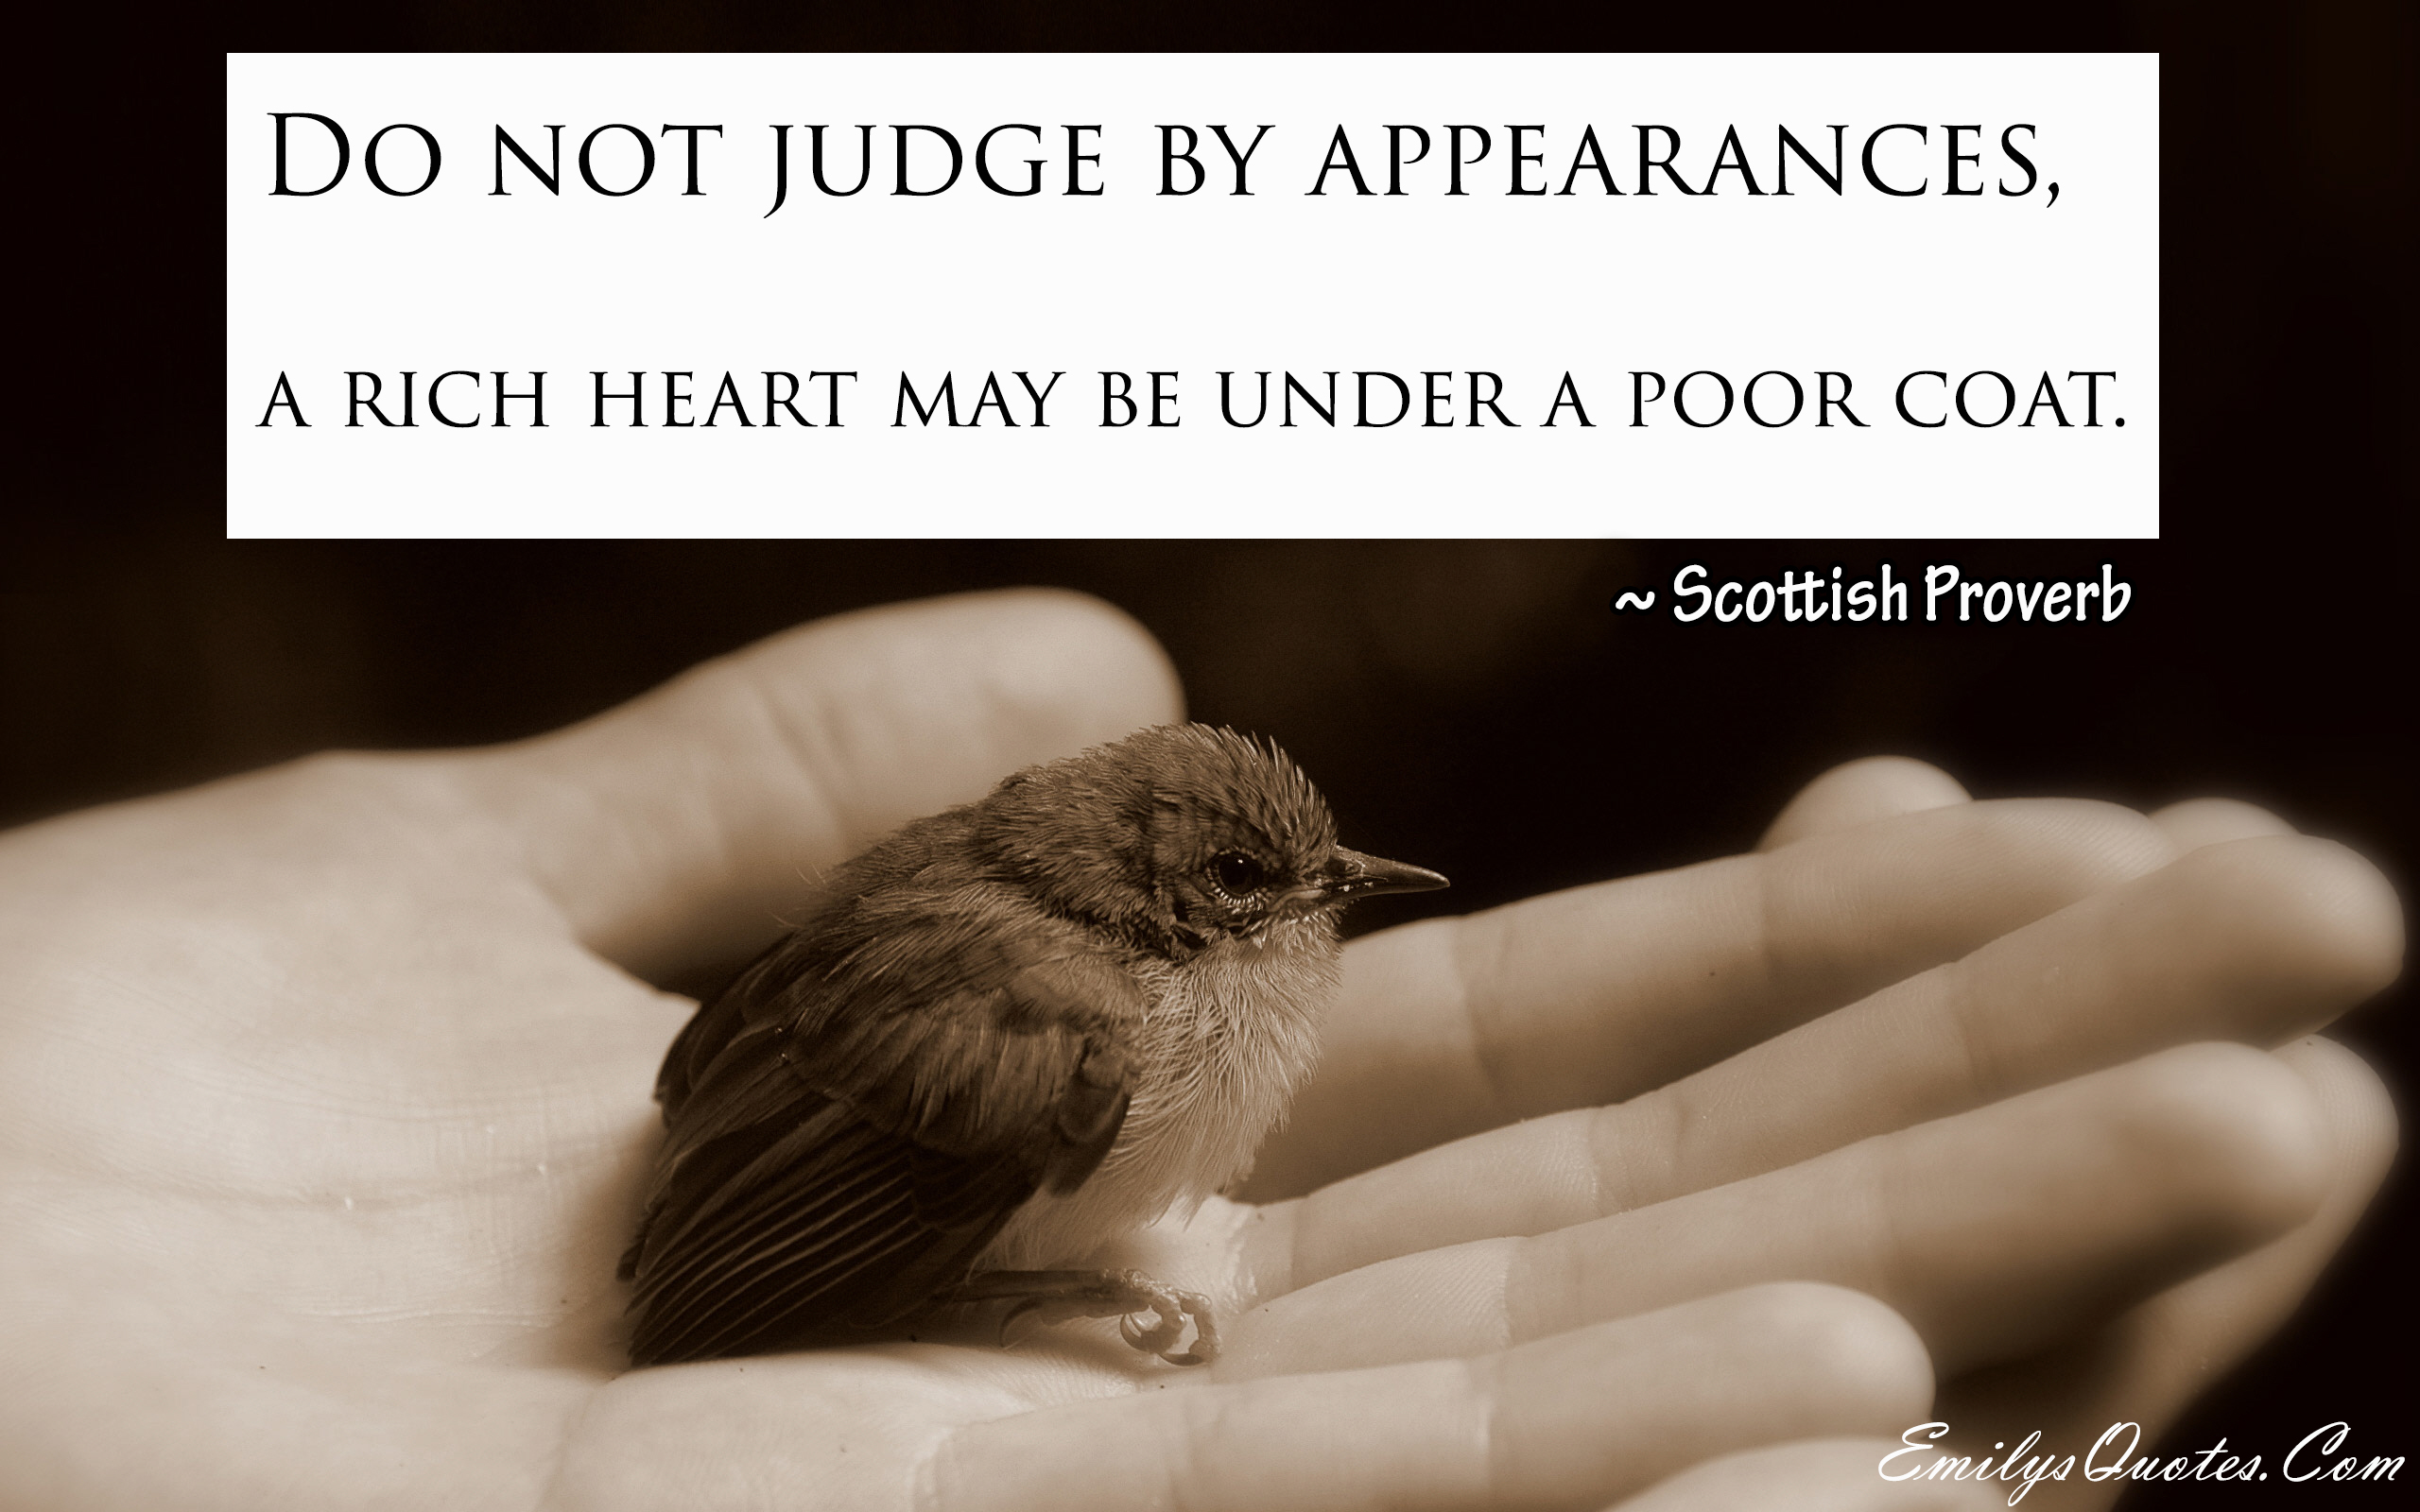 EmilysQuotes.Com - kindness, heart, judge